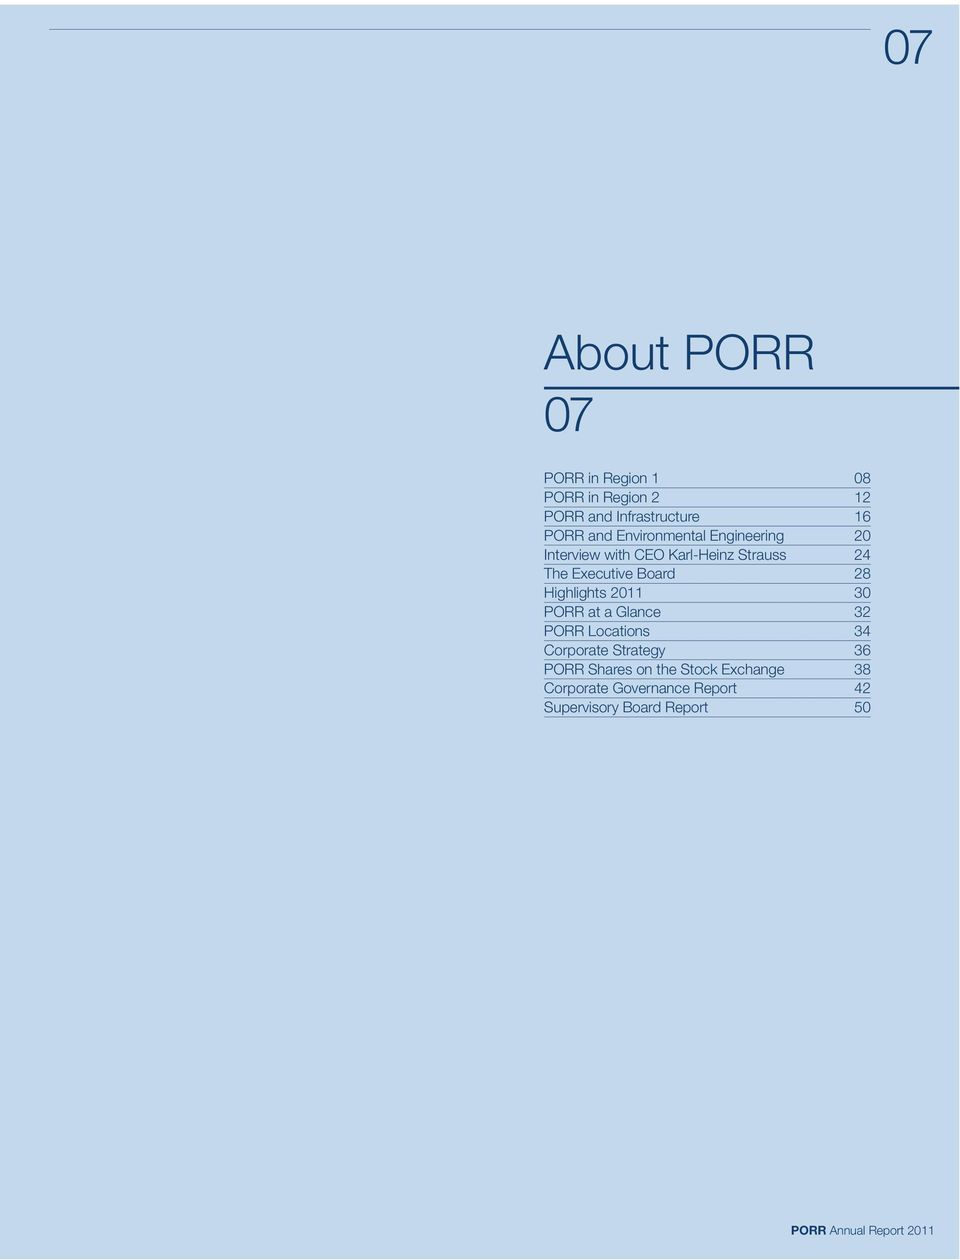 Board 28 Highlights 2011 30 PORR at a Glance 32 PORR Locations 34 Corporate Strategy 36